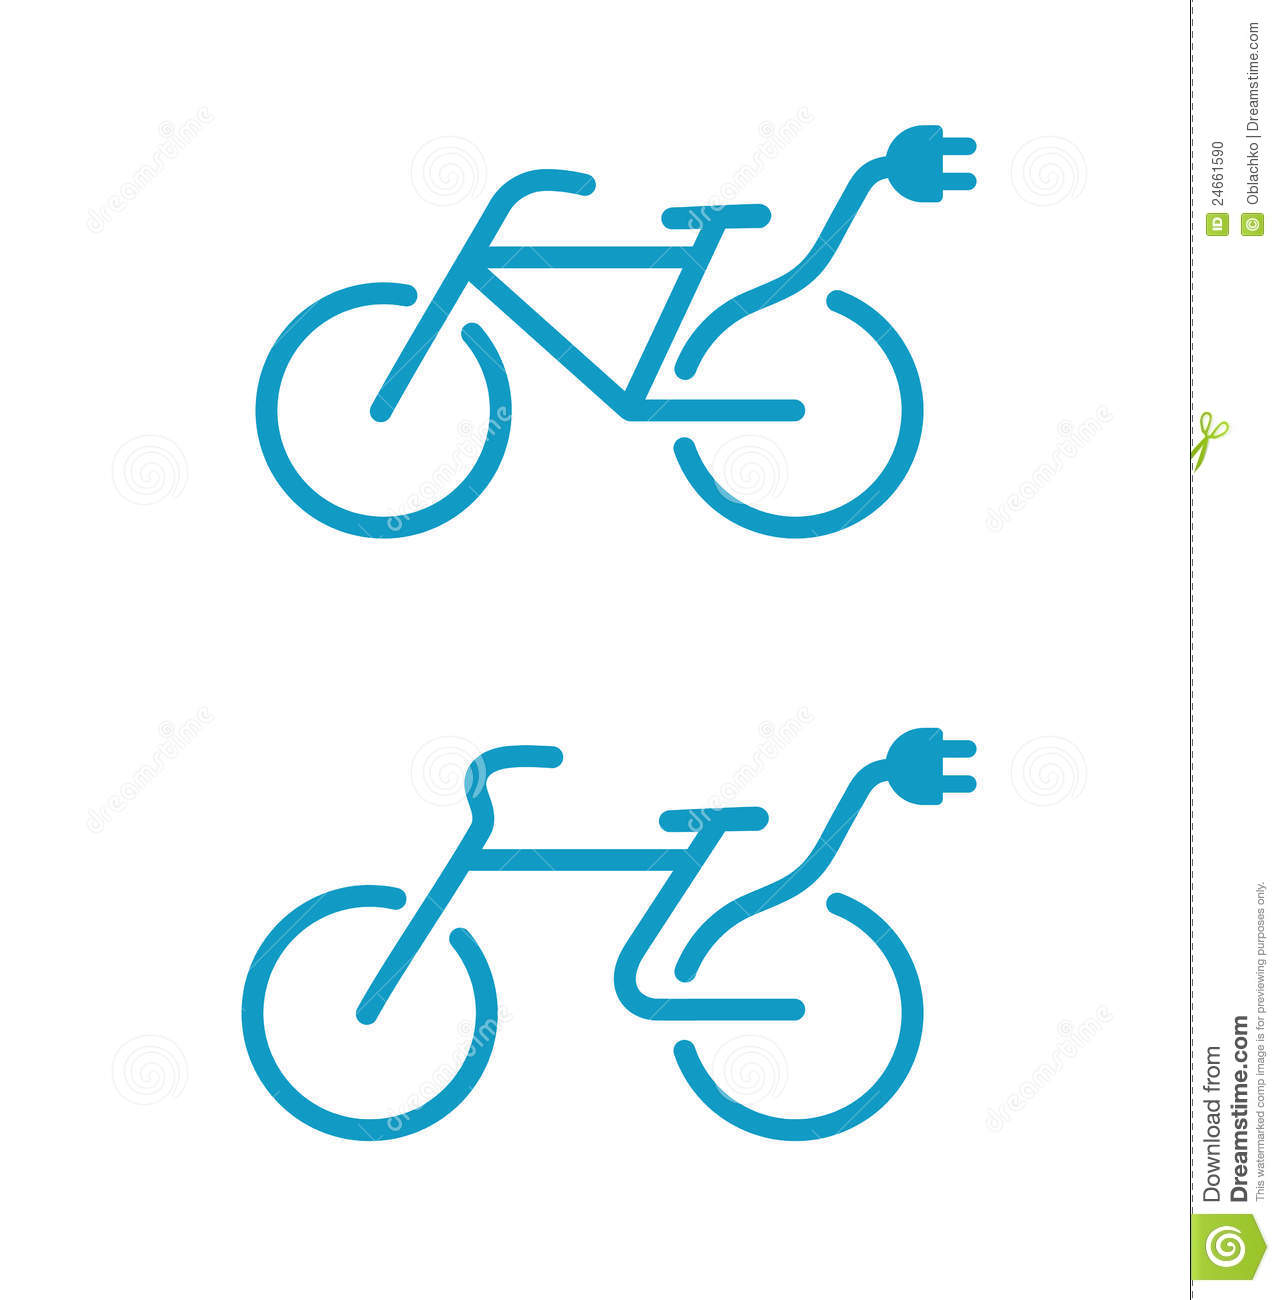 Electric Bicycle Icons Stock Photo - Image: 24661590